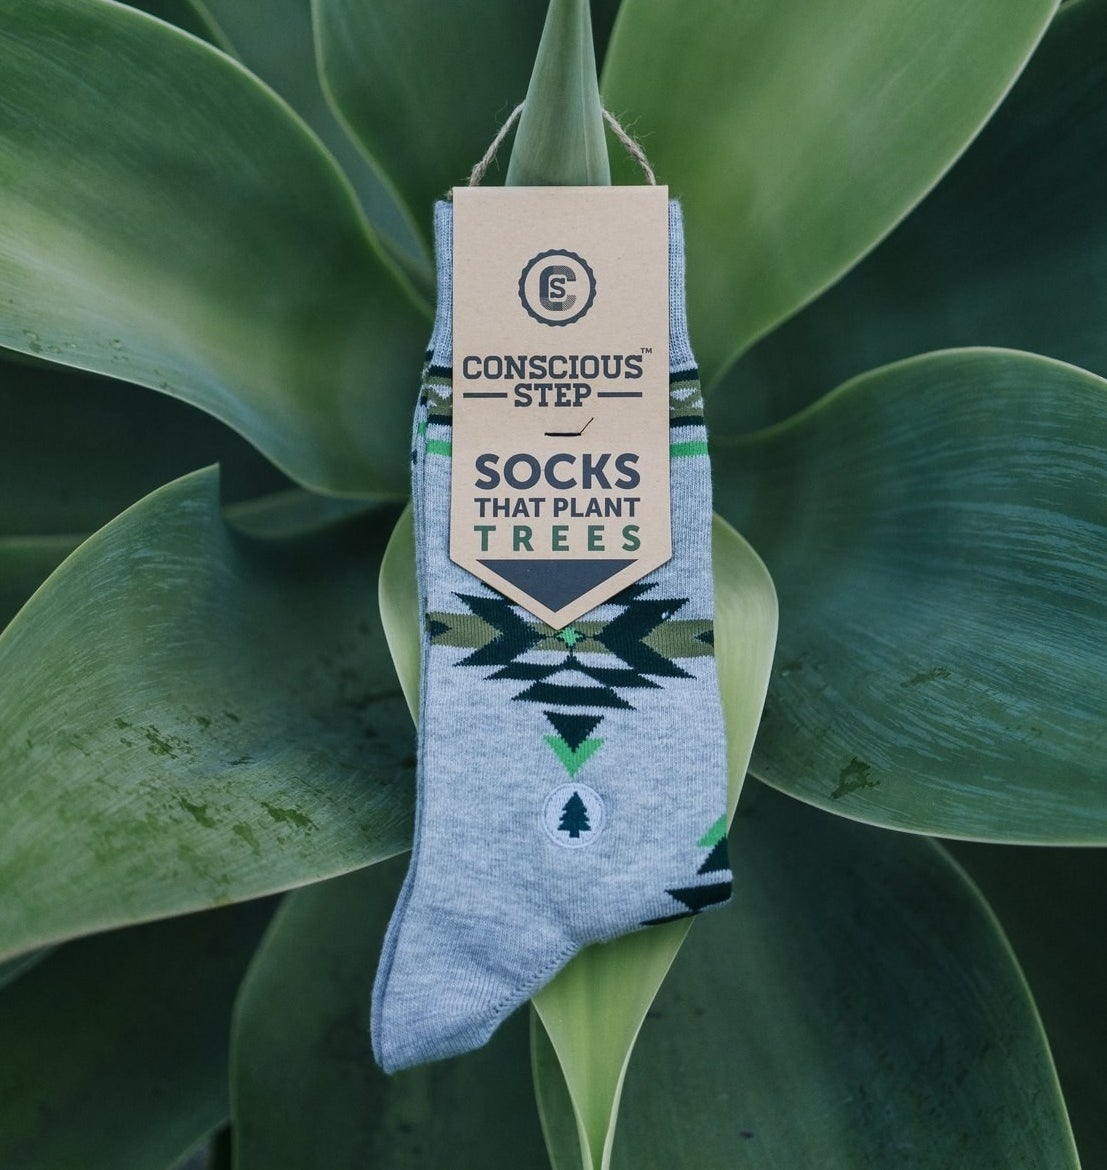 A pair of light gray socks with a design sitting atop a plant